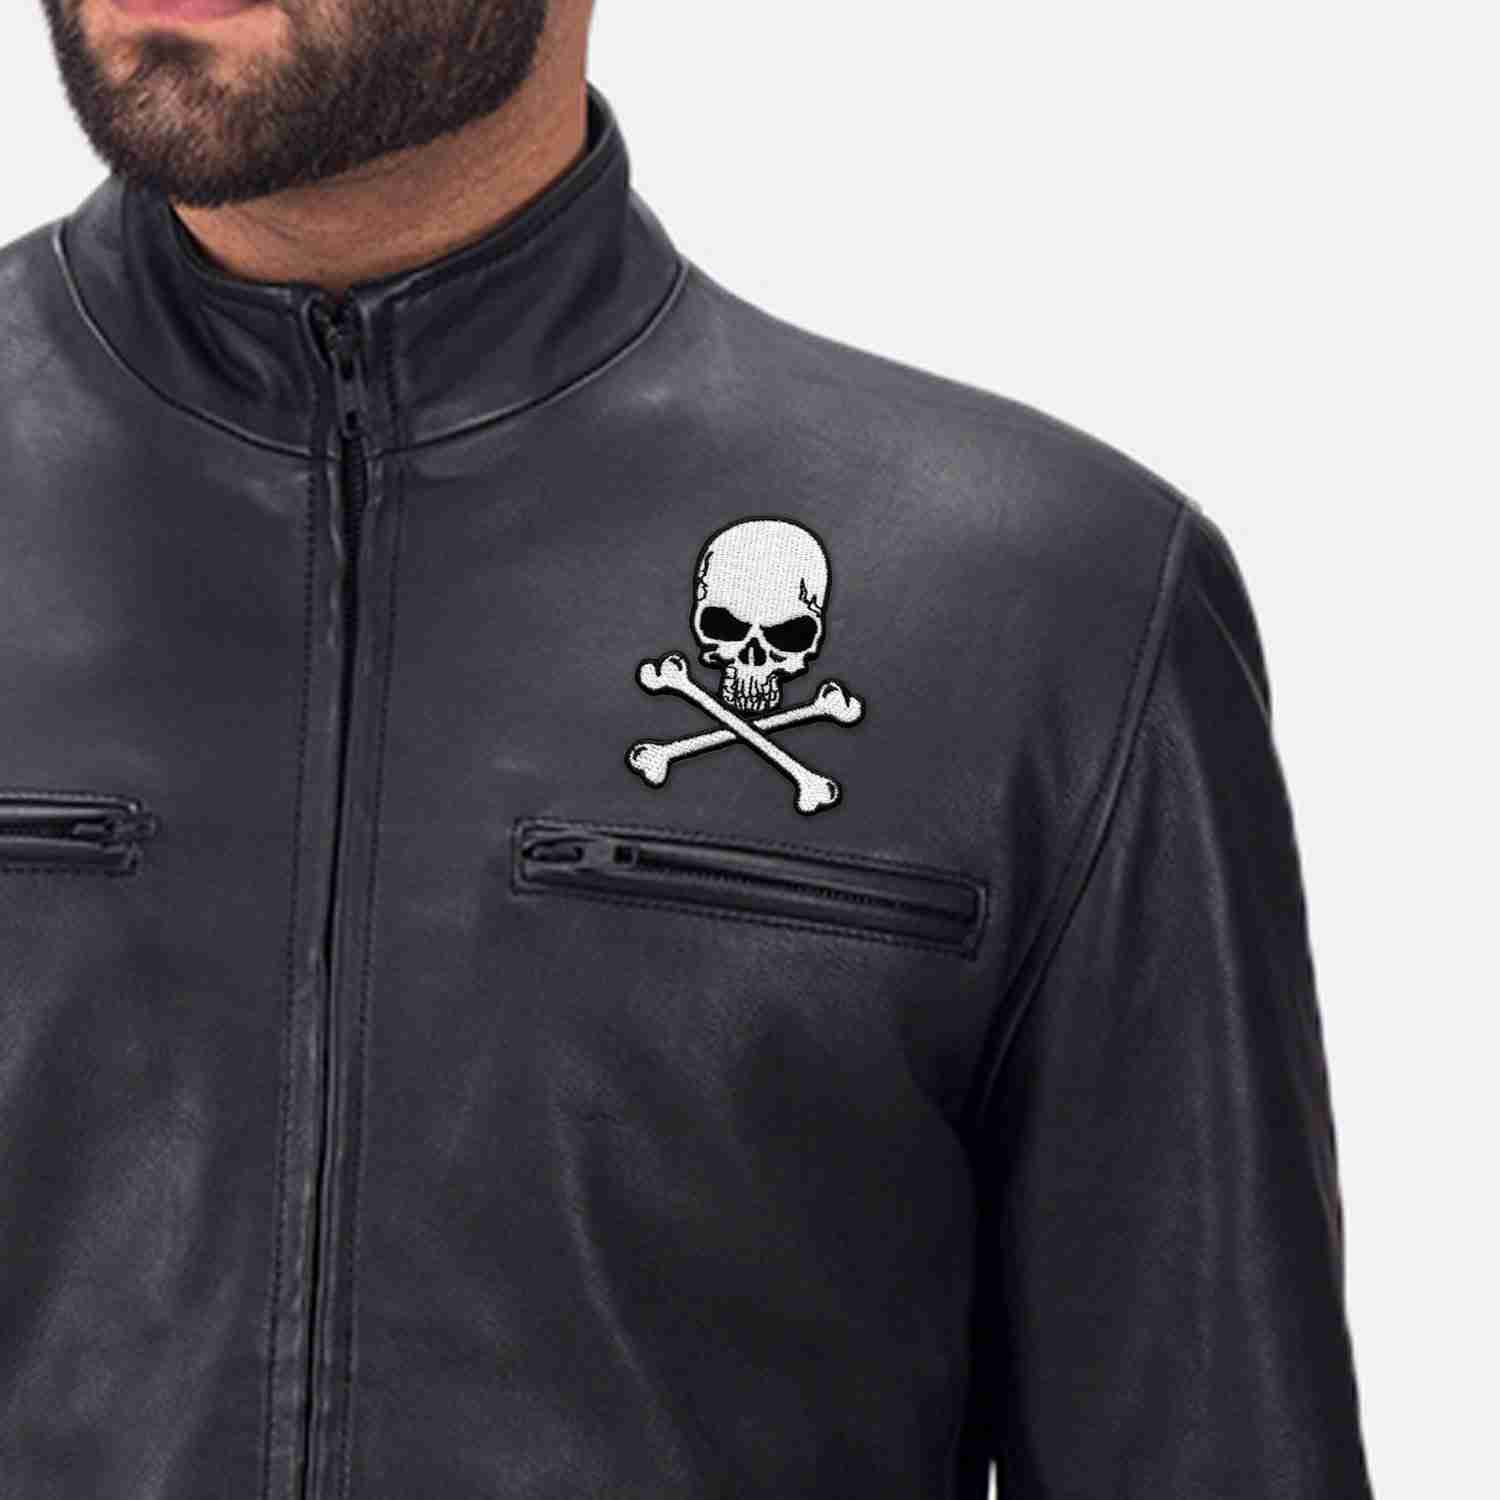 Bat Wing Motorcycle Skull Iron On Patch